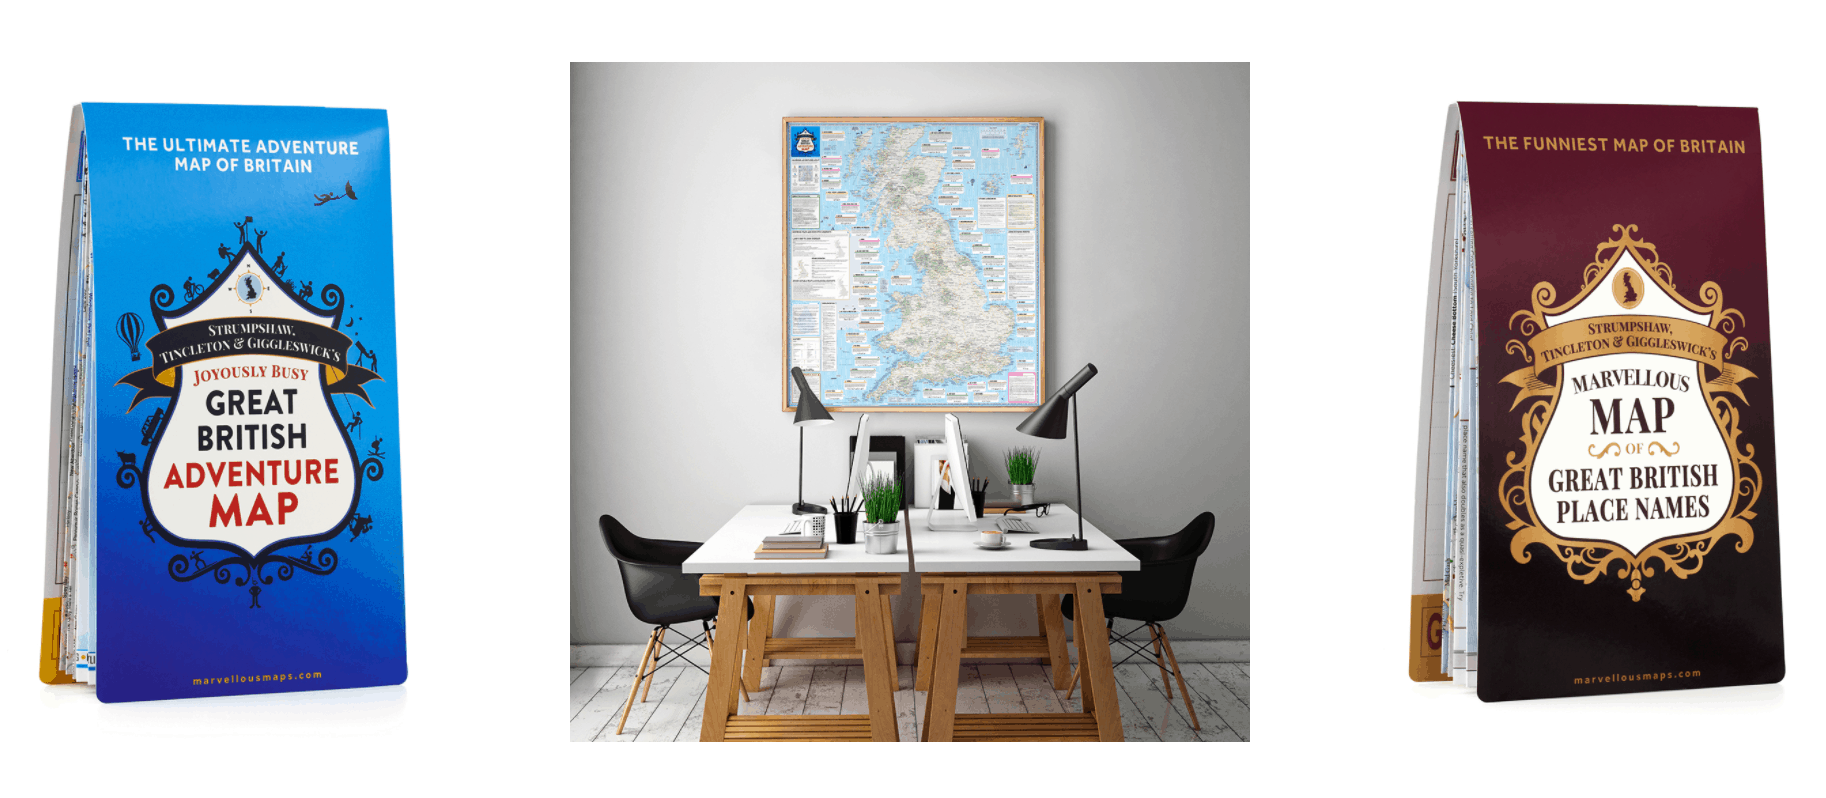 Travel Gift Ideas - Marvellous Maps